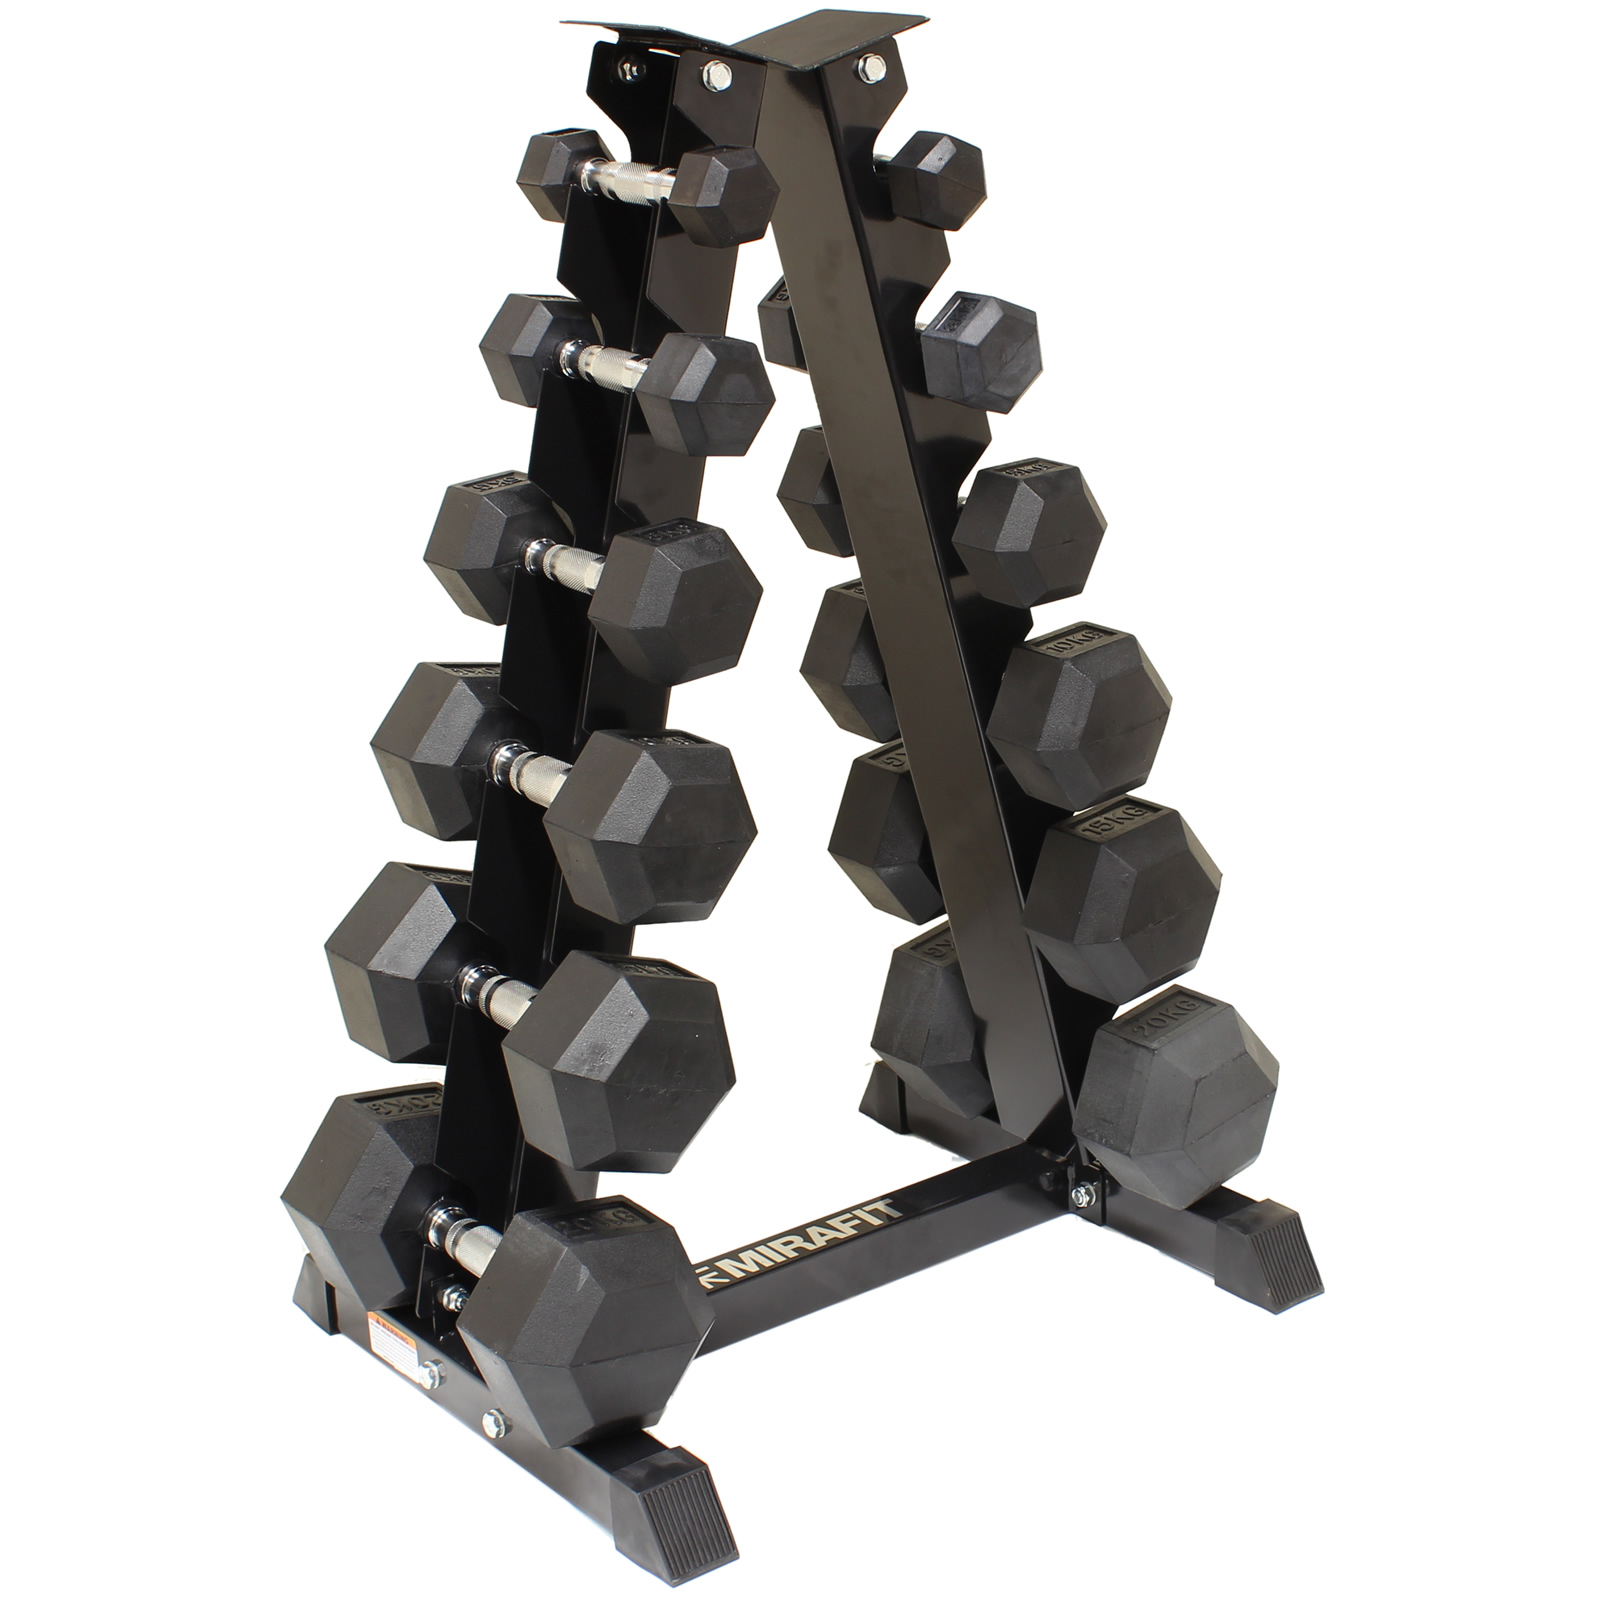 Dumbbell Storage Rack Dandk Organizer